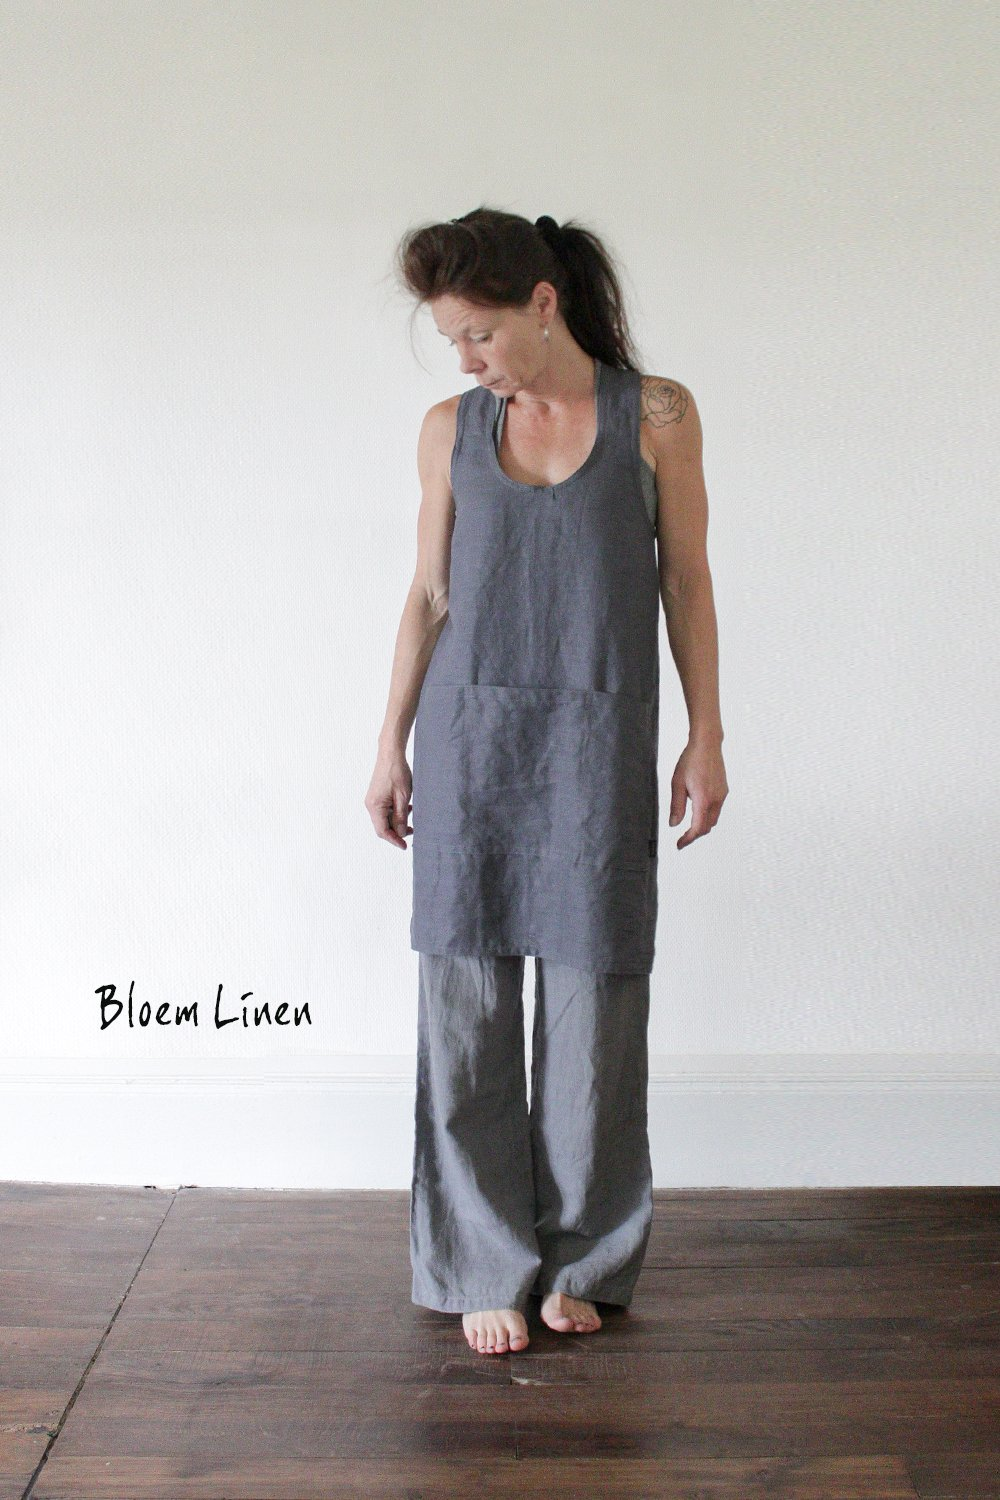 Linen apron in Ardoise, Pinafore, Apron dress in natural linen, Eco friendly by Bloem Linen